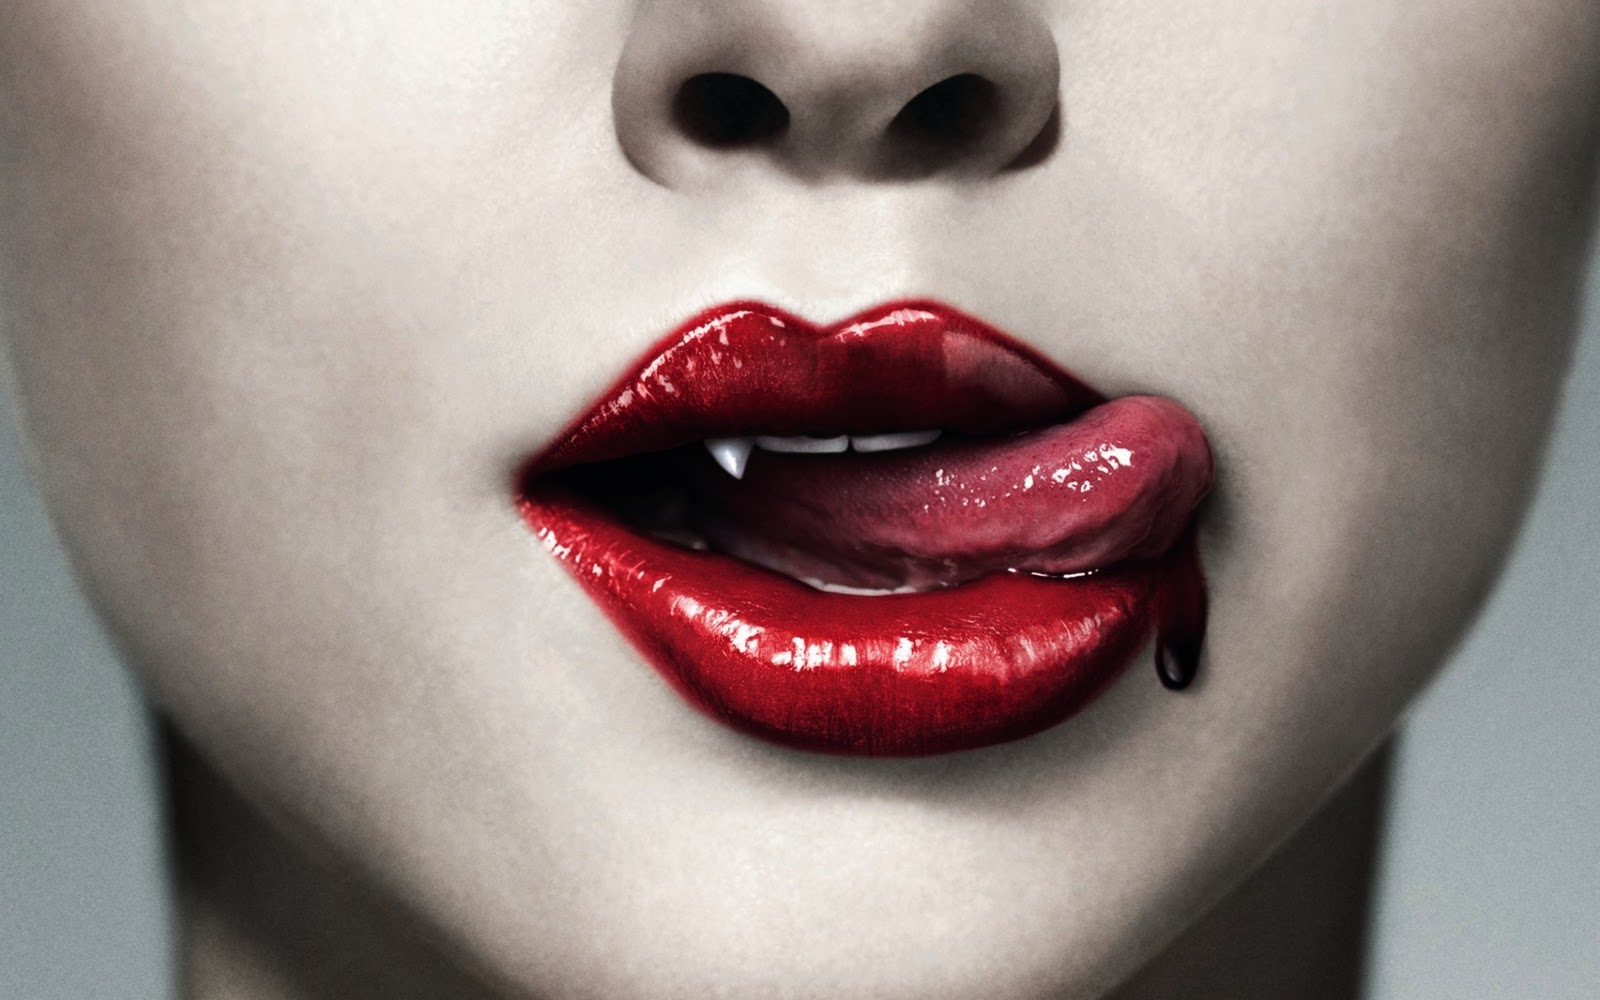 wongseng hd wallpapers hot vampire lips wallpaper